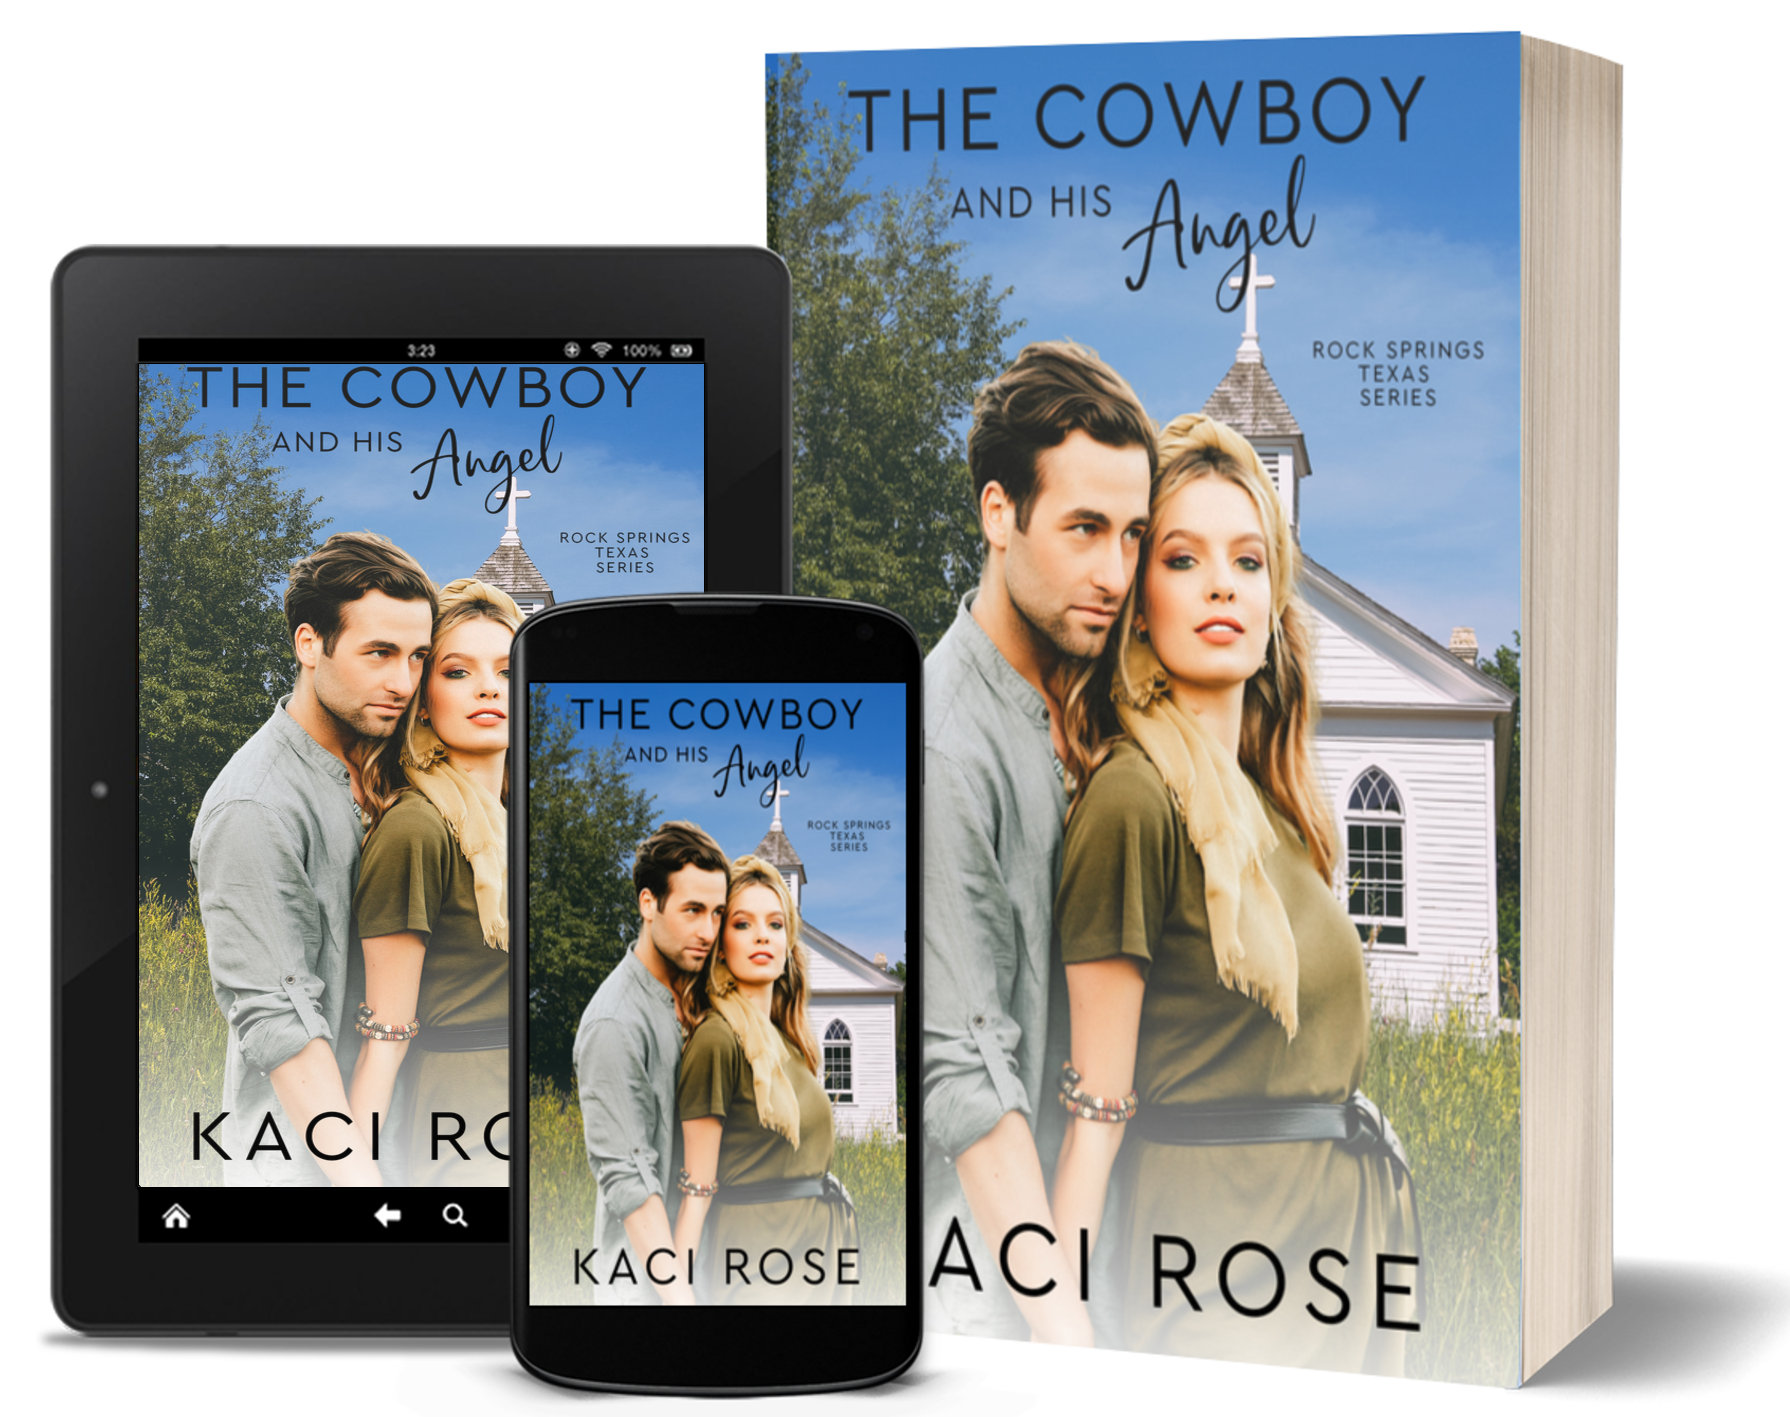 The Cowboy and His Angel - 3D covers